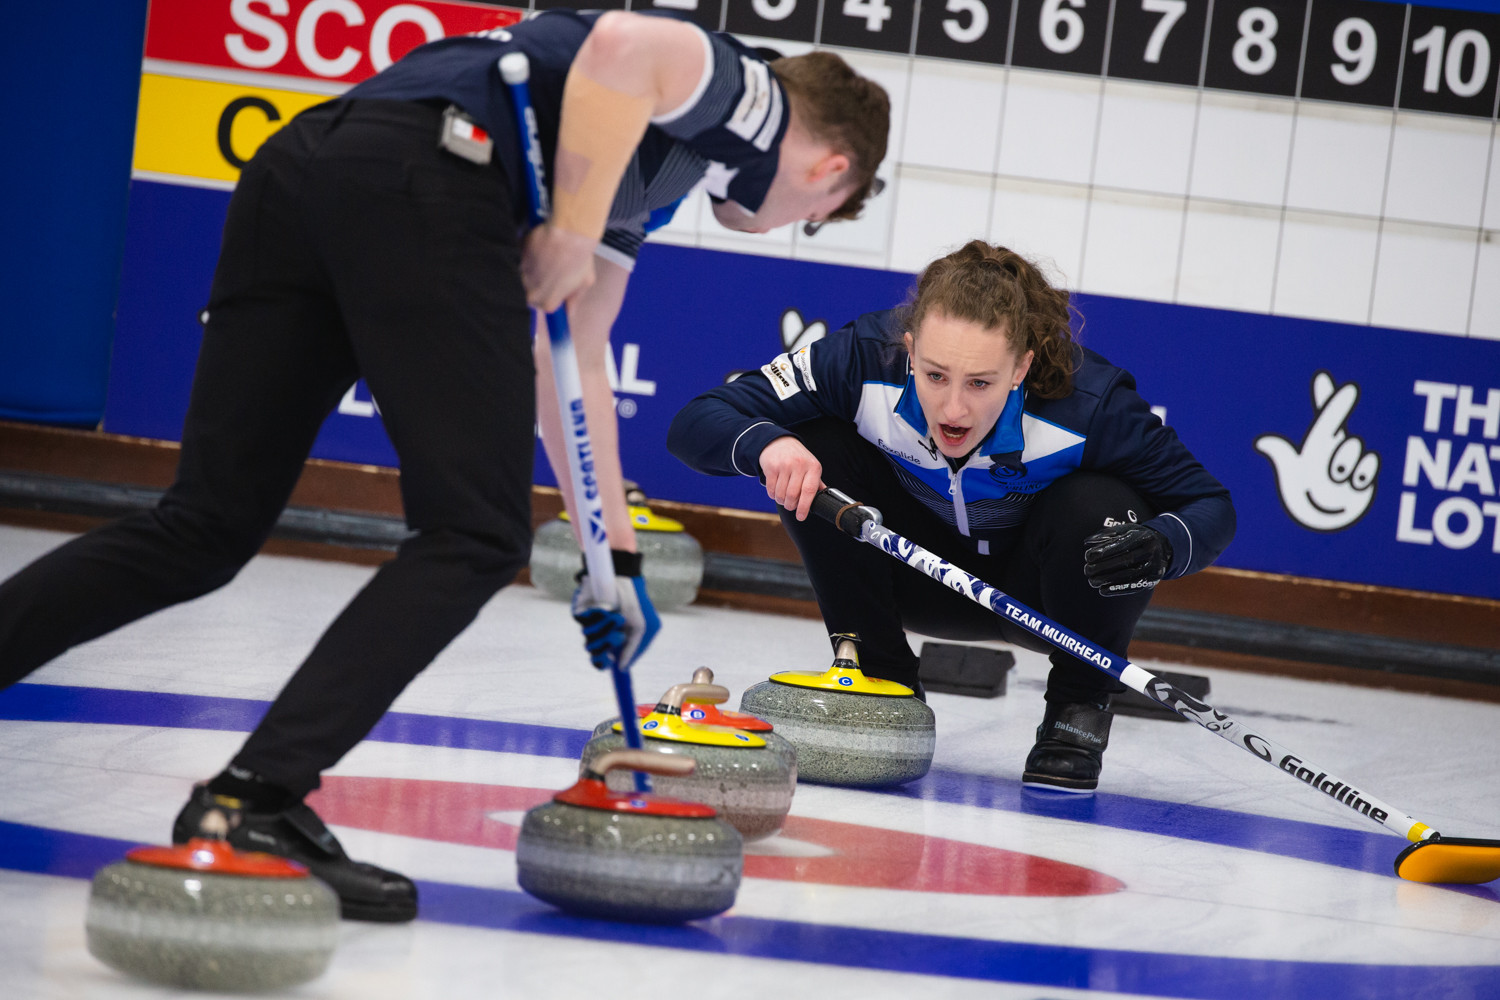 Scotland and Norway reach World Mixed Doubles Curling Championship final